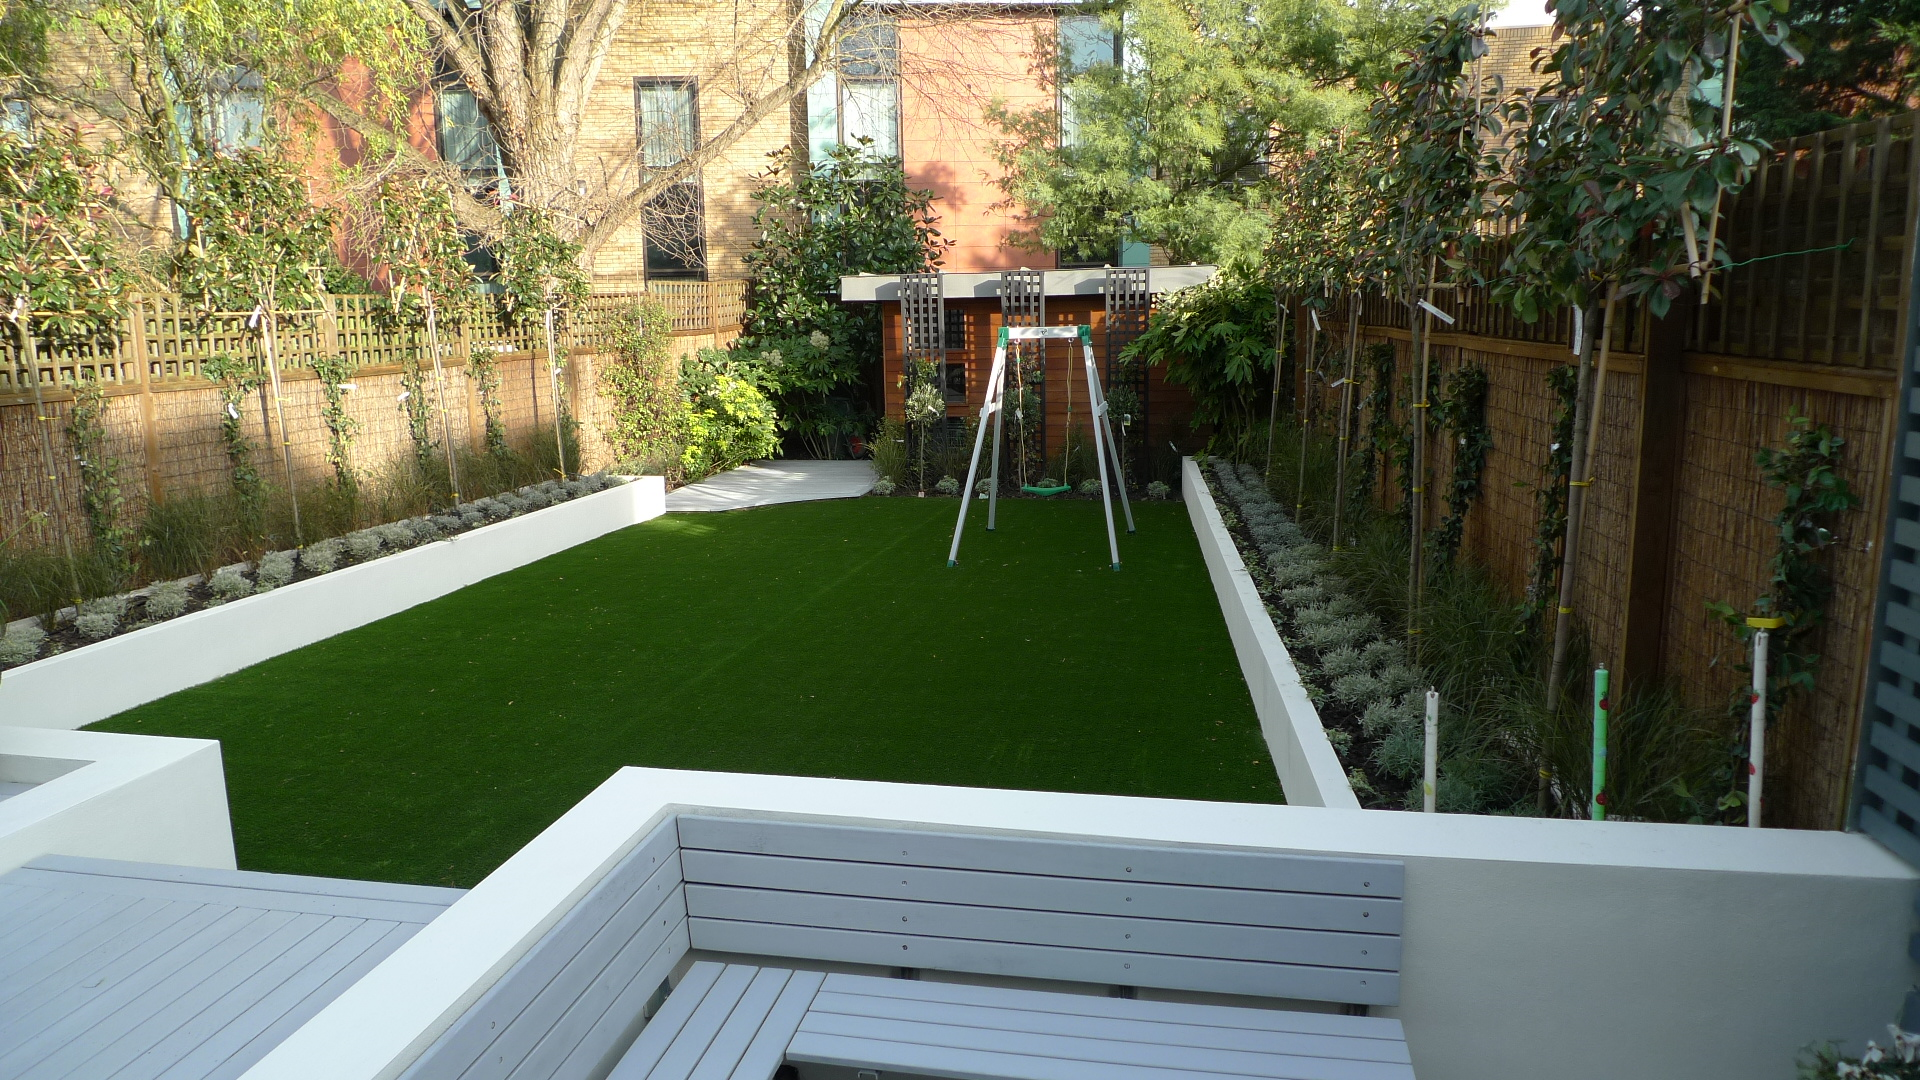 Modern garden design ideas london london garden design for Modern landscape ideas